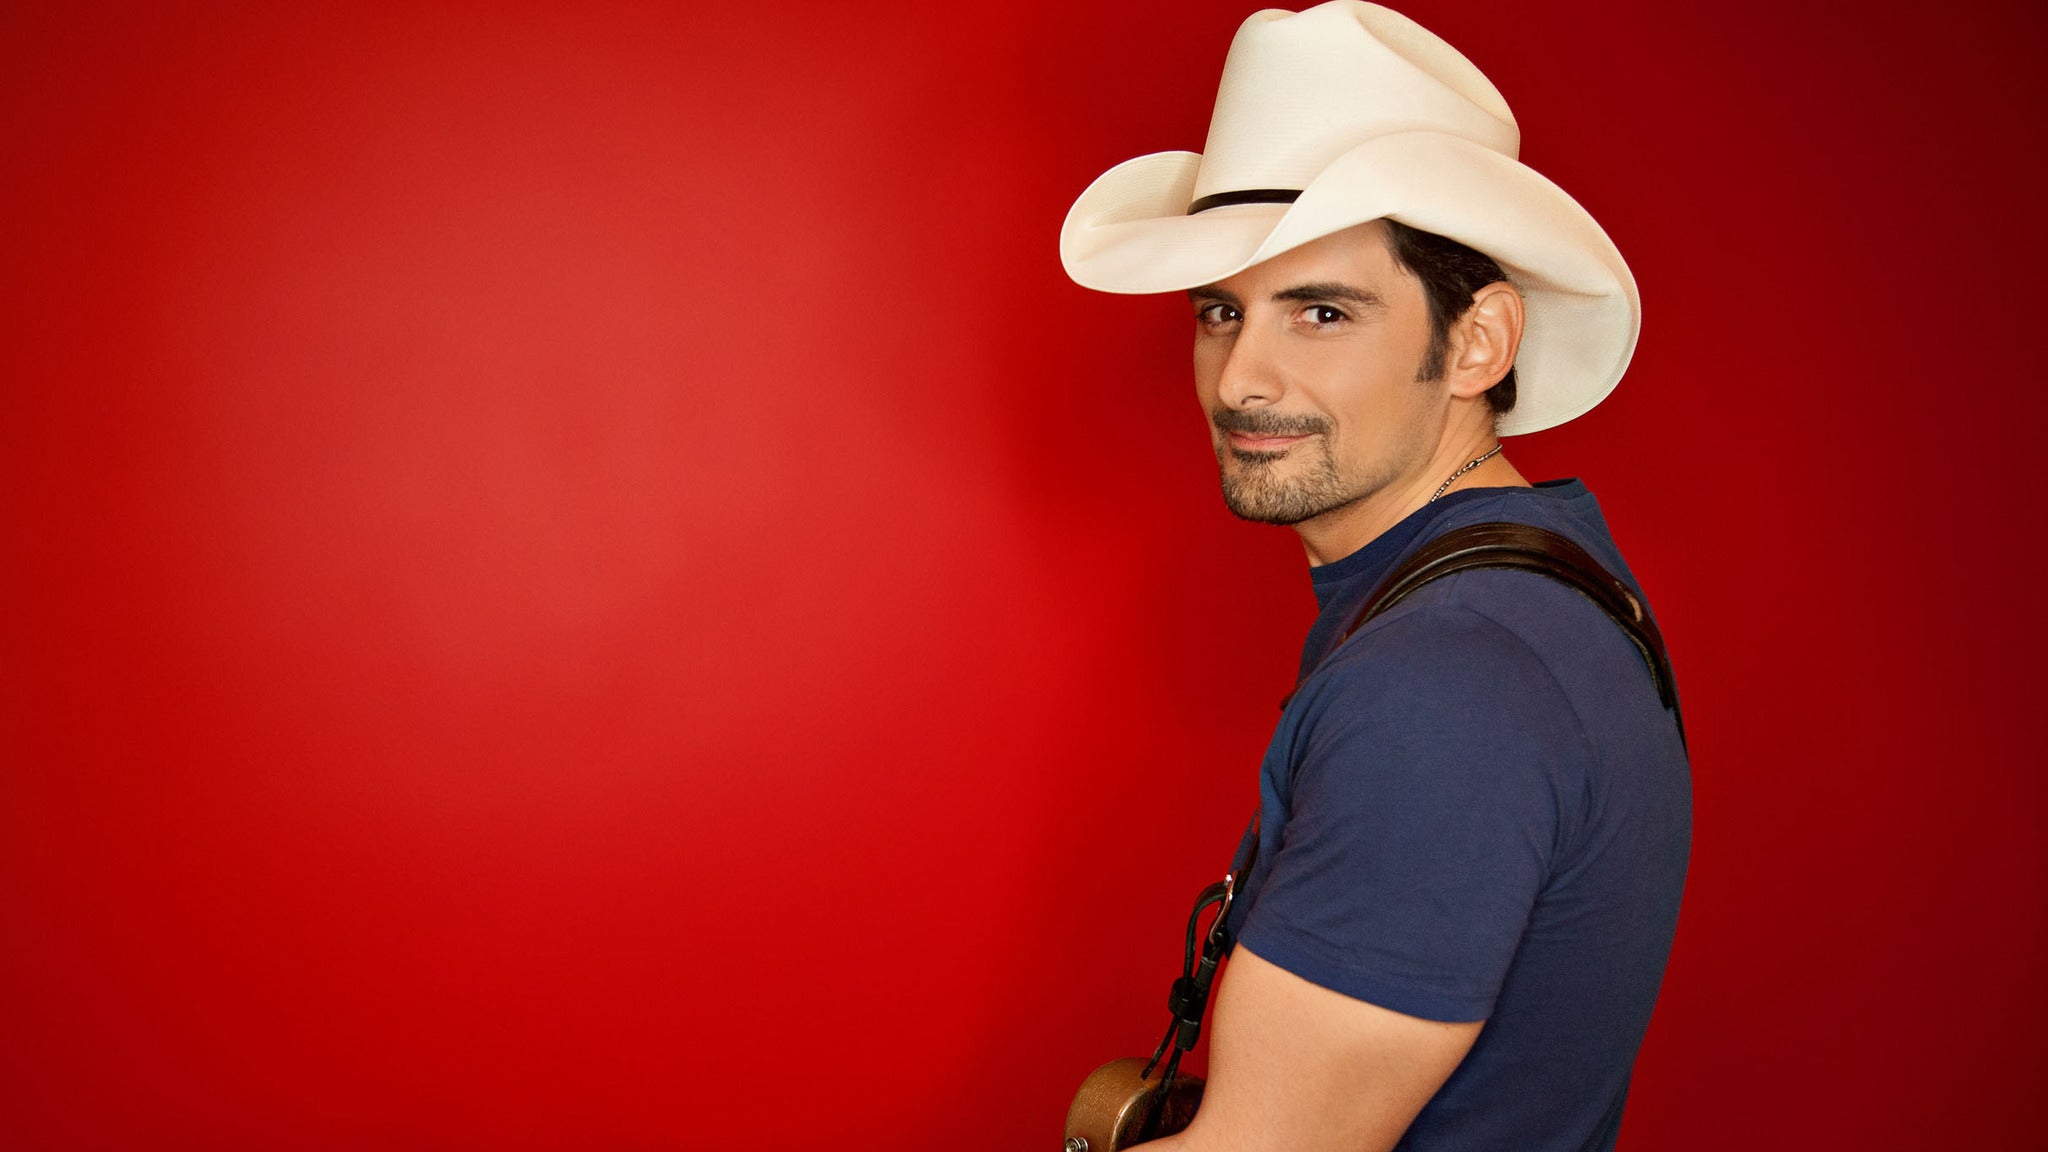 Brad Paisley Weekend Warrior World Tour at Save Mart Center